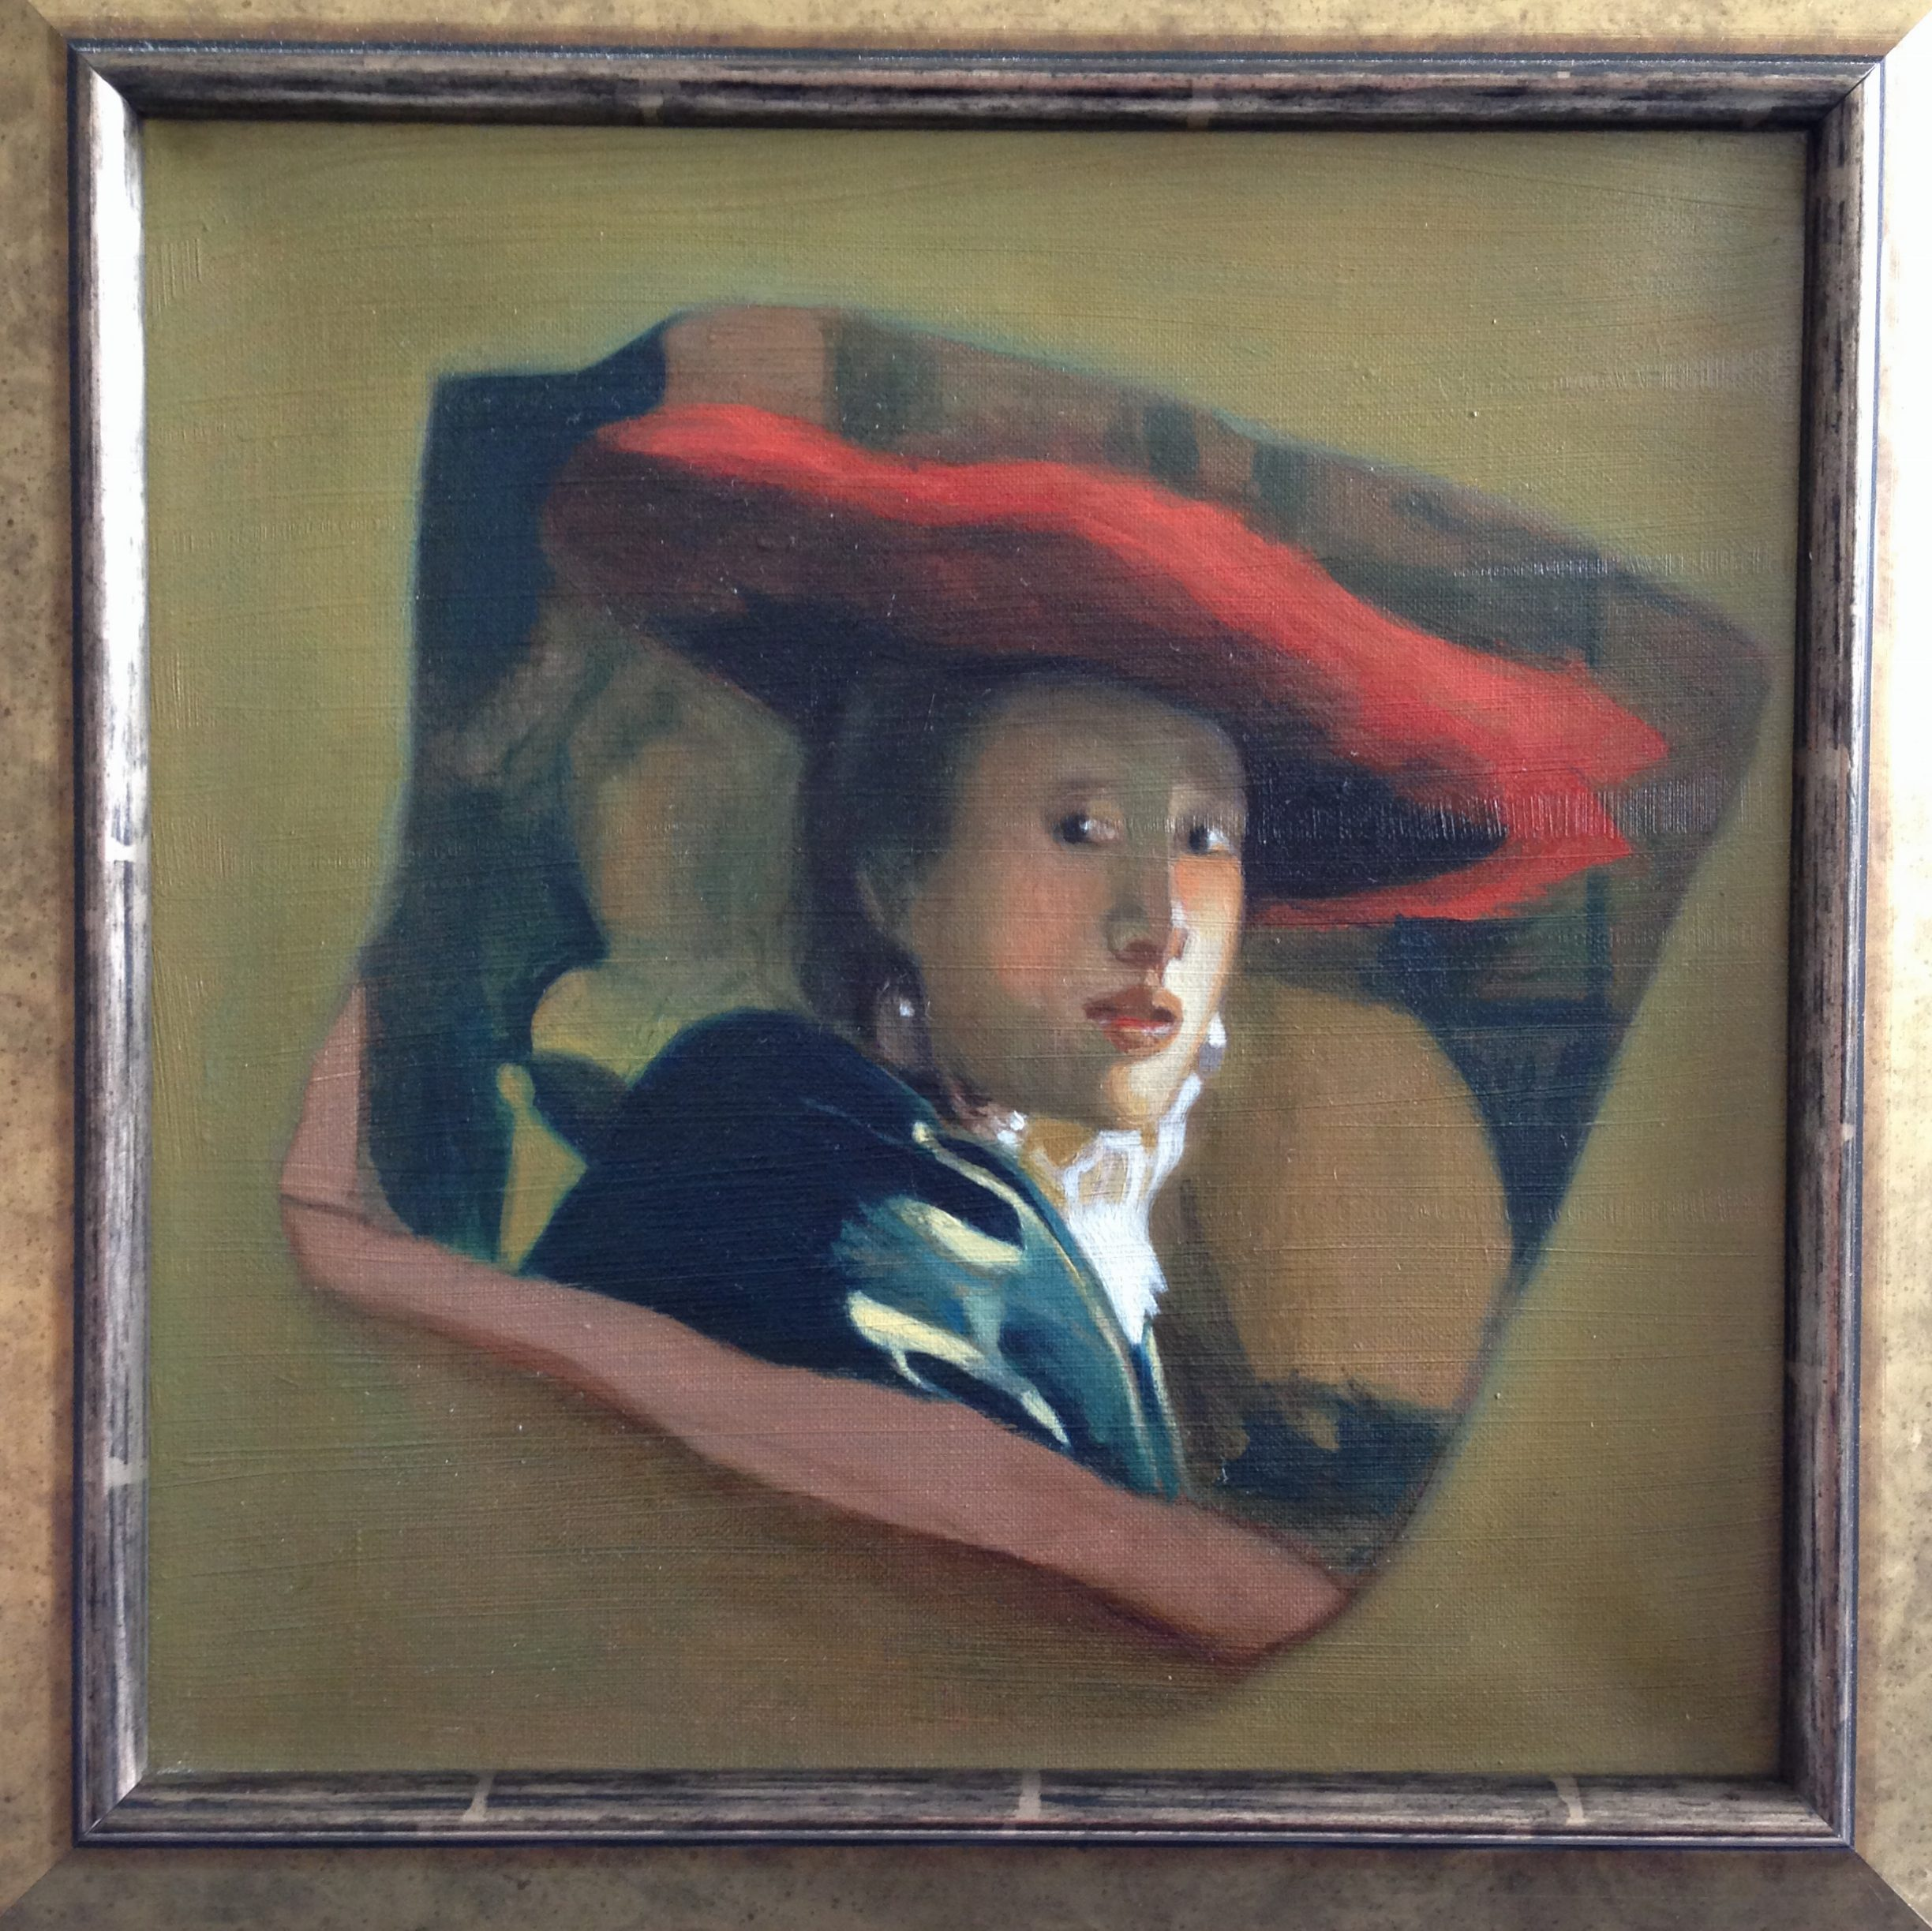 Victoria king, 'Girl with a Red Hat' – after Jan Vermeer